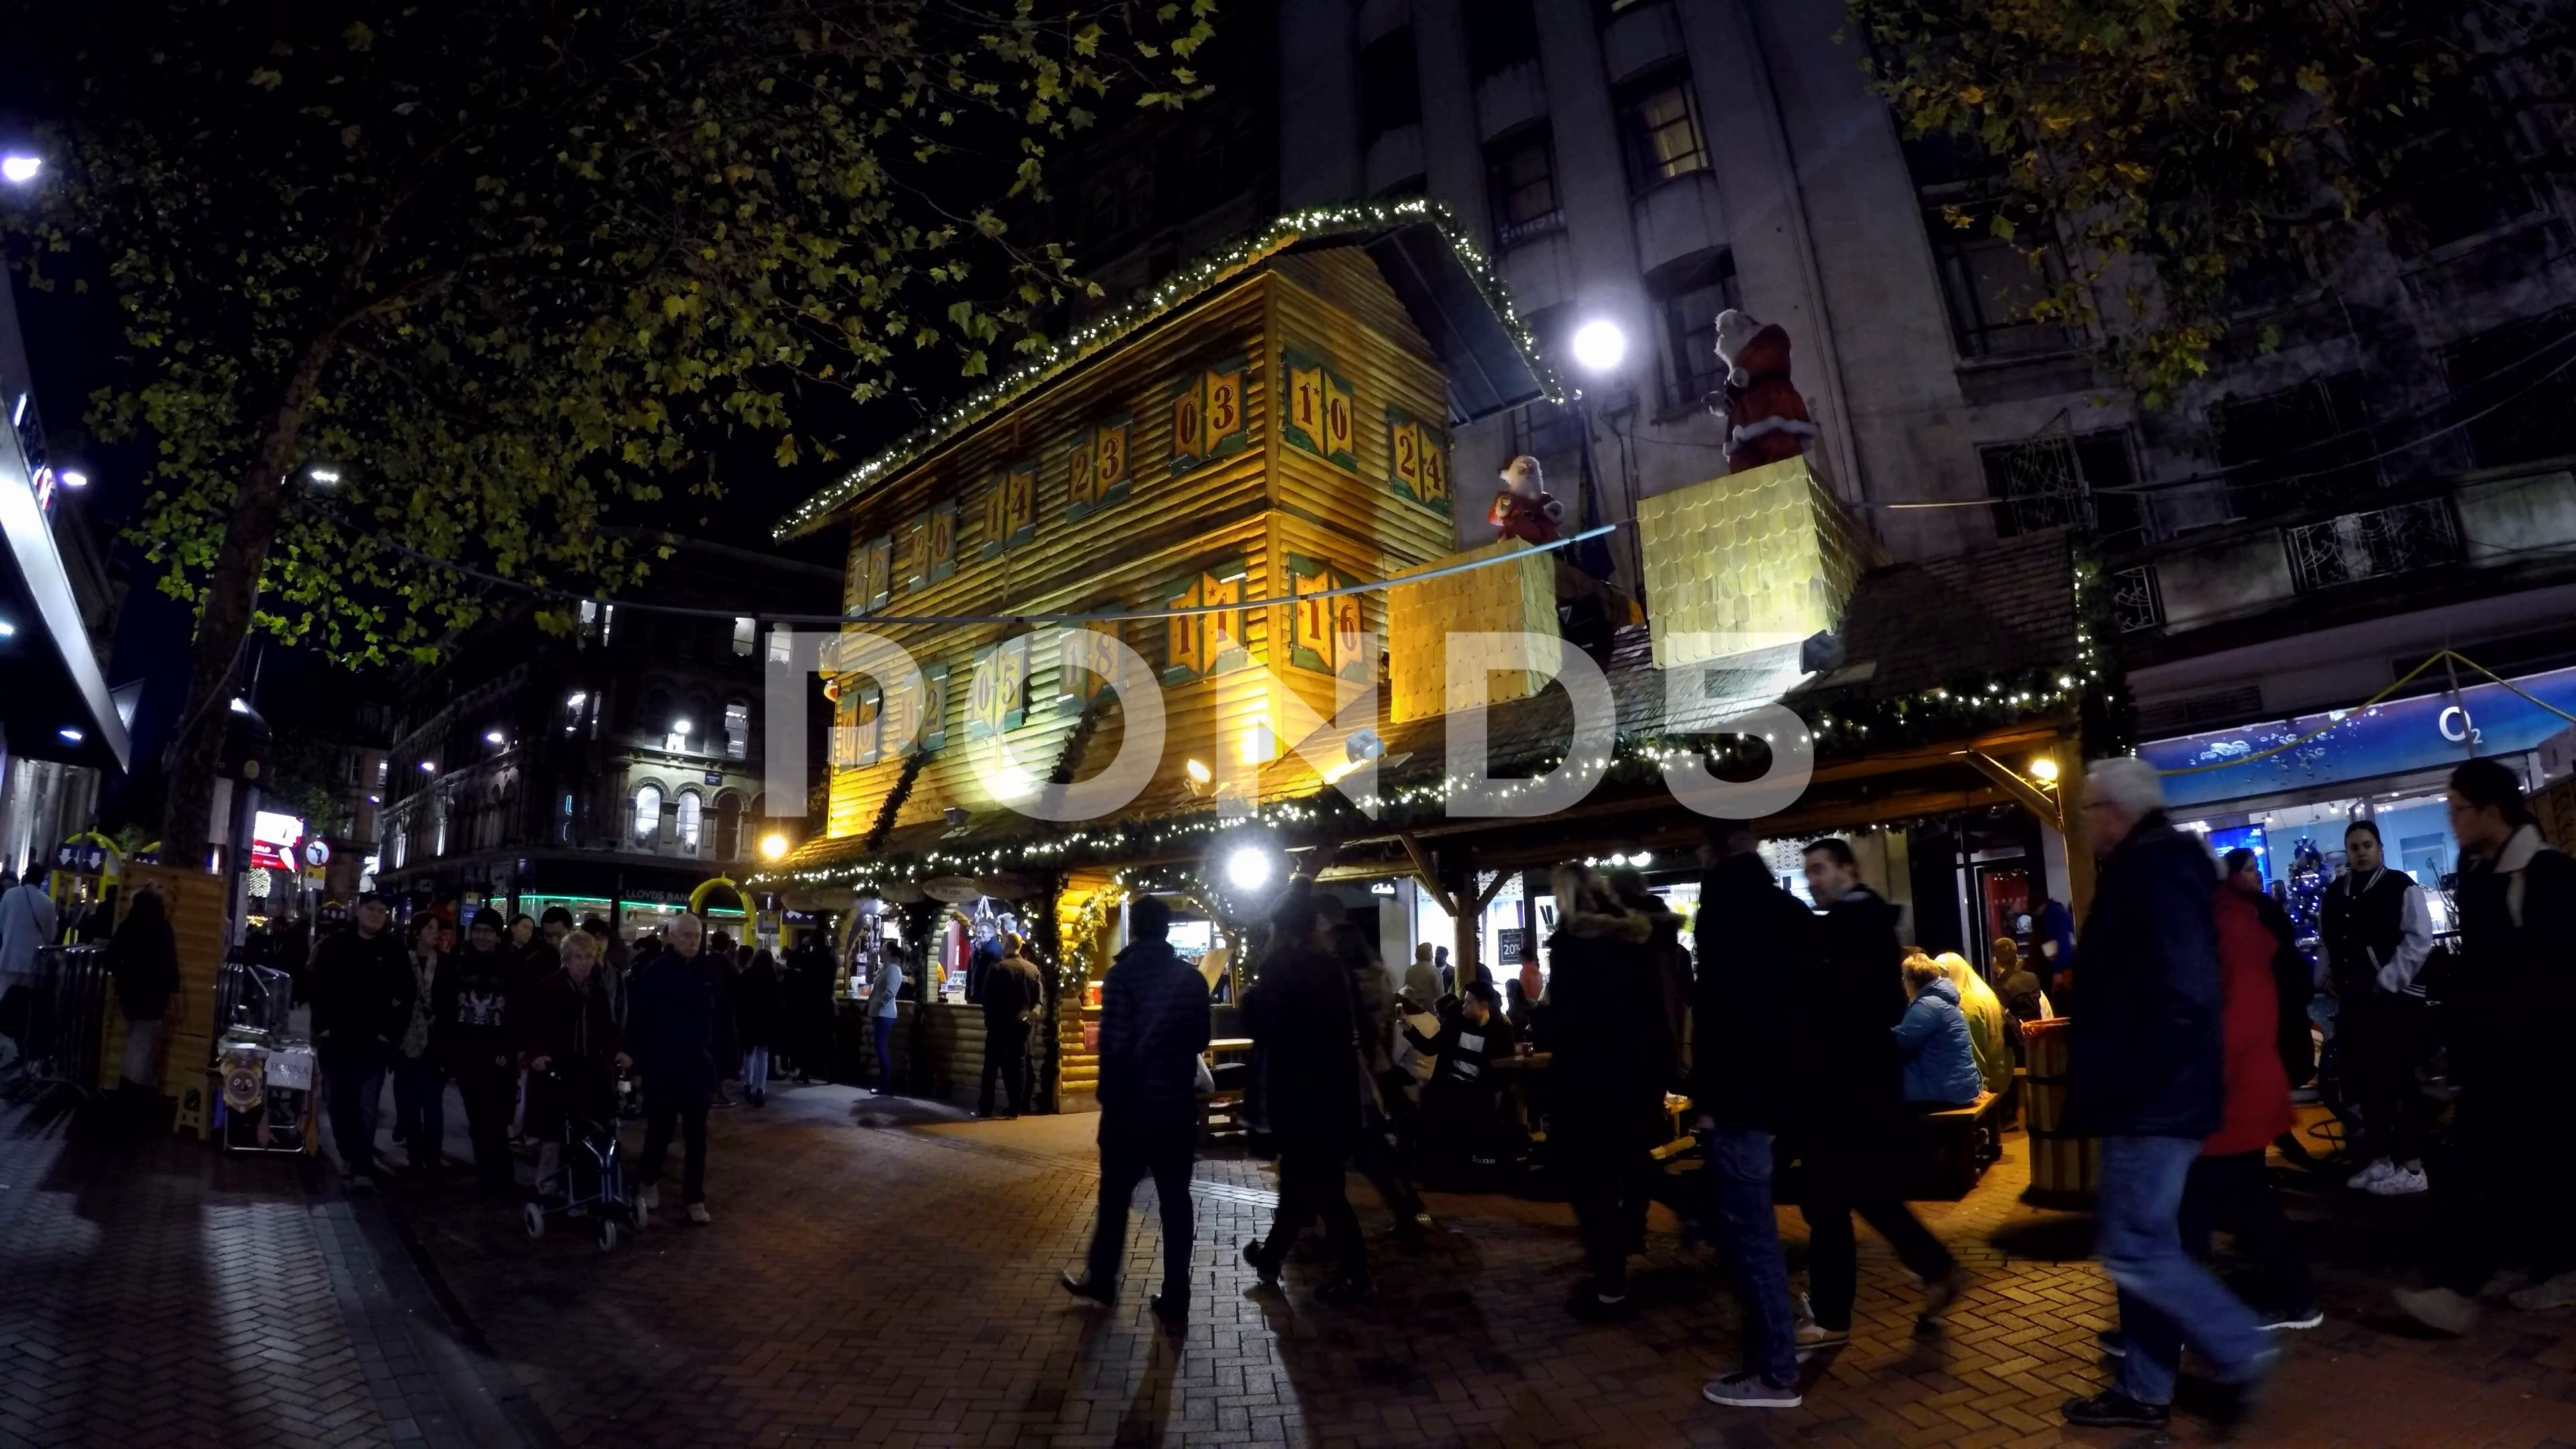 People Walking Past Birmingham German Christmas Market Stalls At